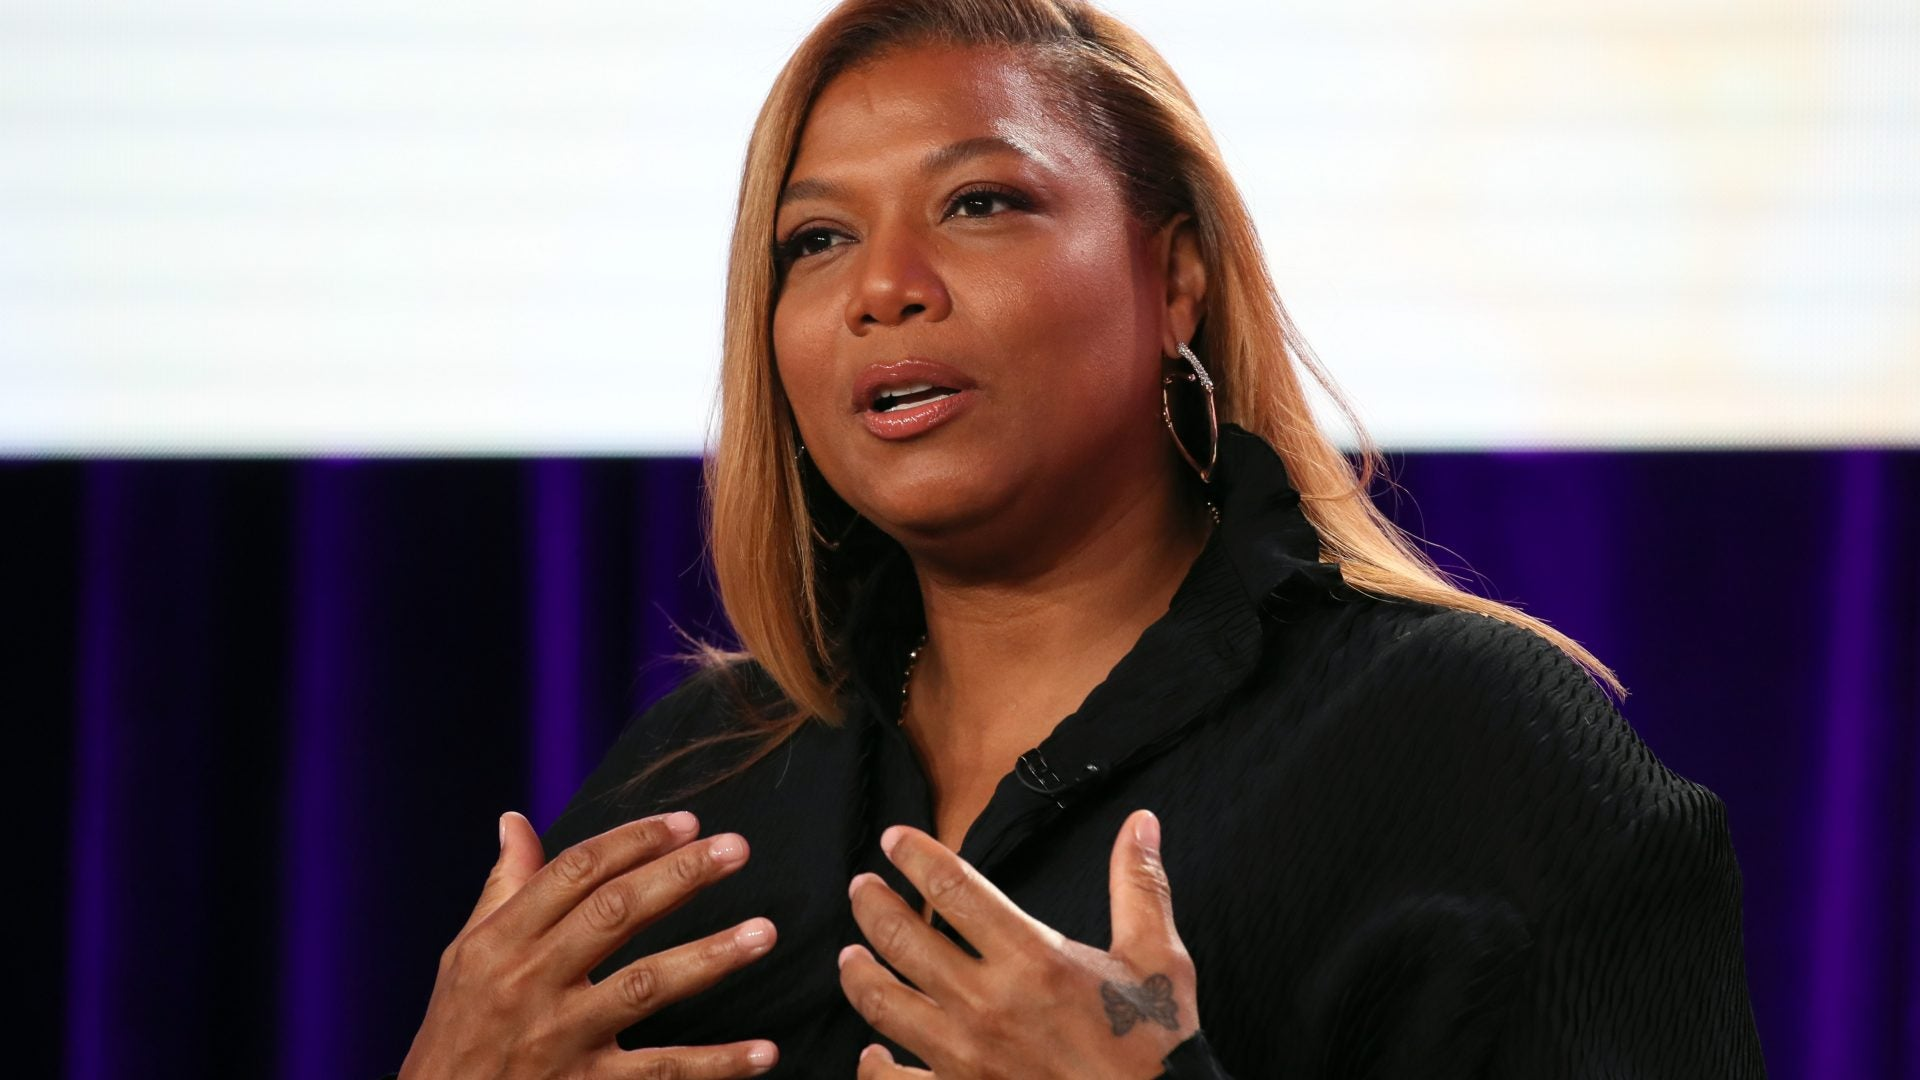 Queen Latifah To Host Facebook Watch Special 'Change Together'